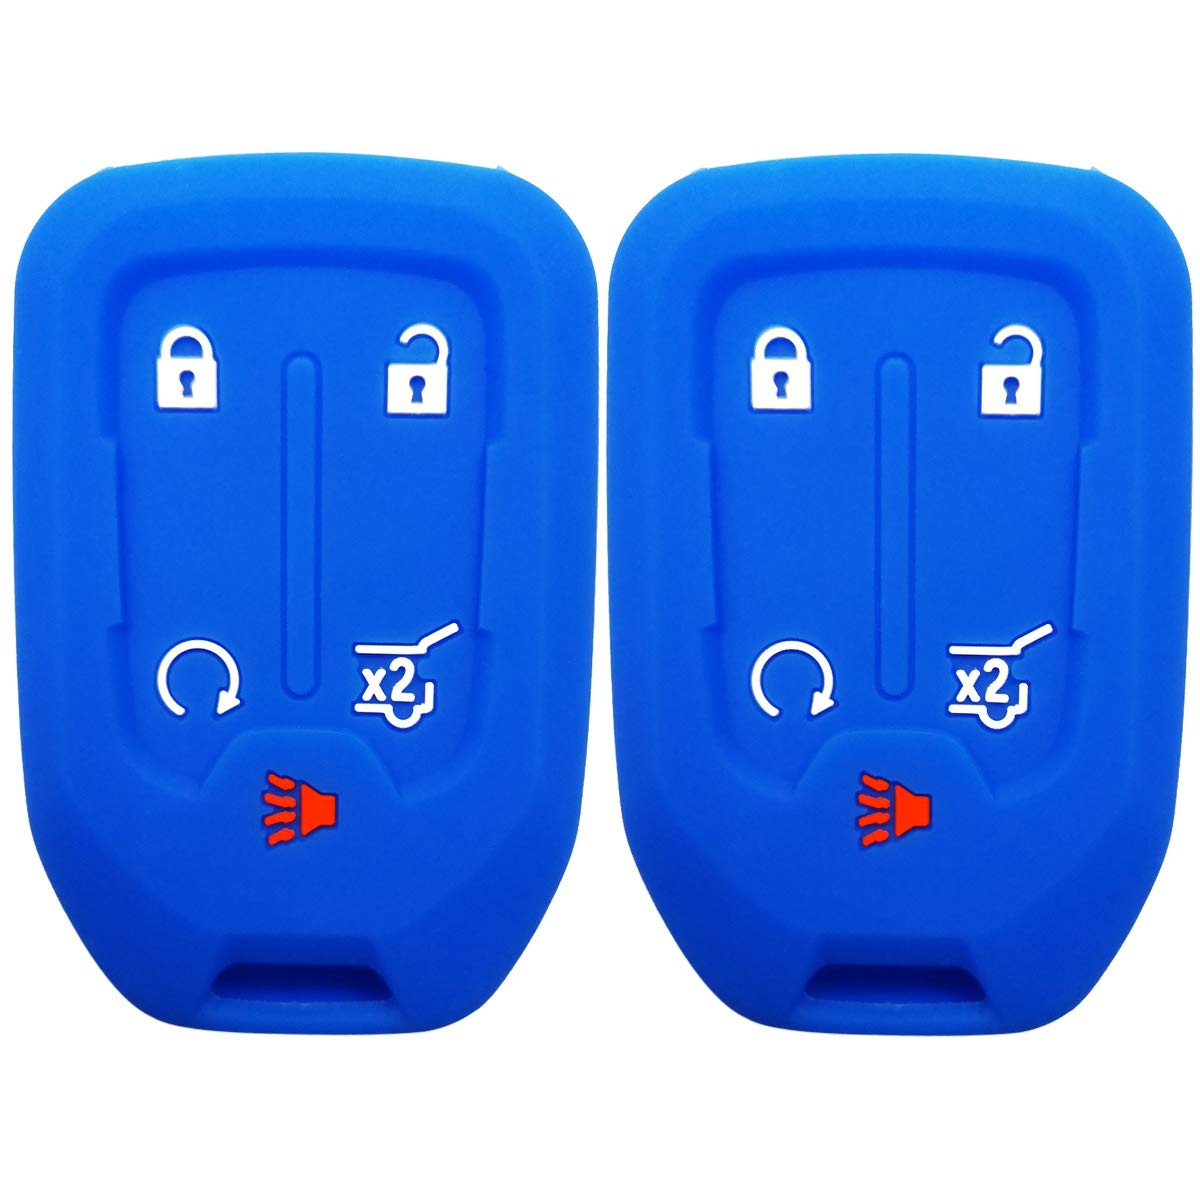 2Pcs Coolbestda Silicone 5Buttons Smart Key Fob Accessories Remote Cover Glove Skin Jacket for GMC Acadia Terrain Yukon Chevrolet Suburban Tahoe HYQ1AA 13584502 1551A-AA